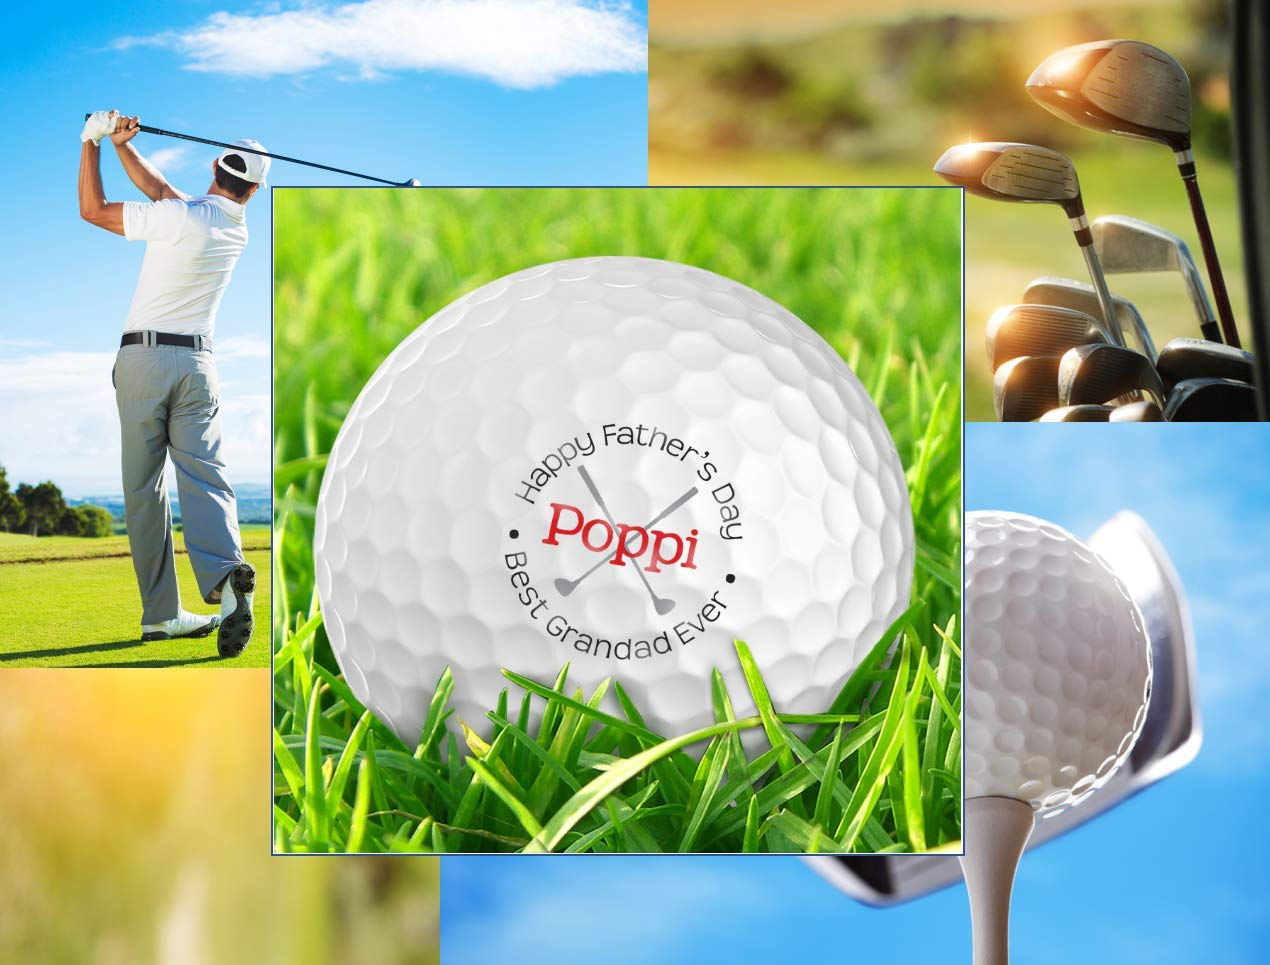 Infusion Father's Day Best Grandad Ever Golf Balls - Personalize The Name (12 Balls)